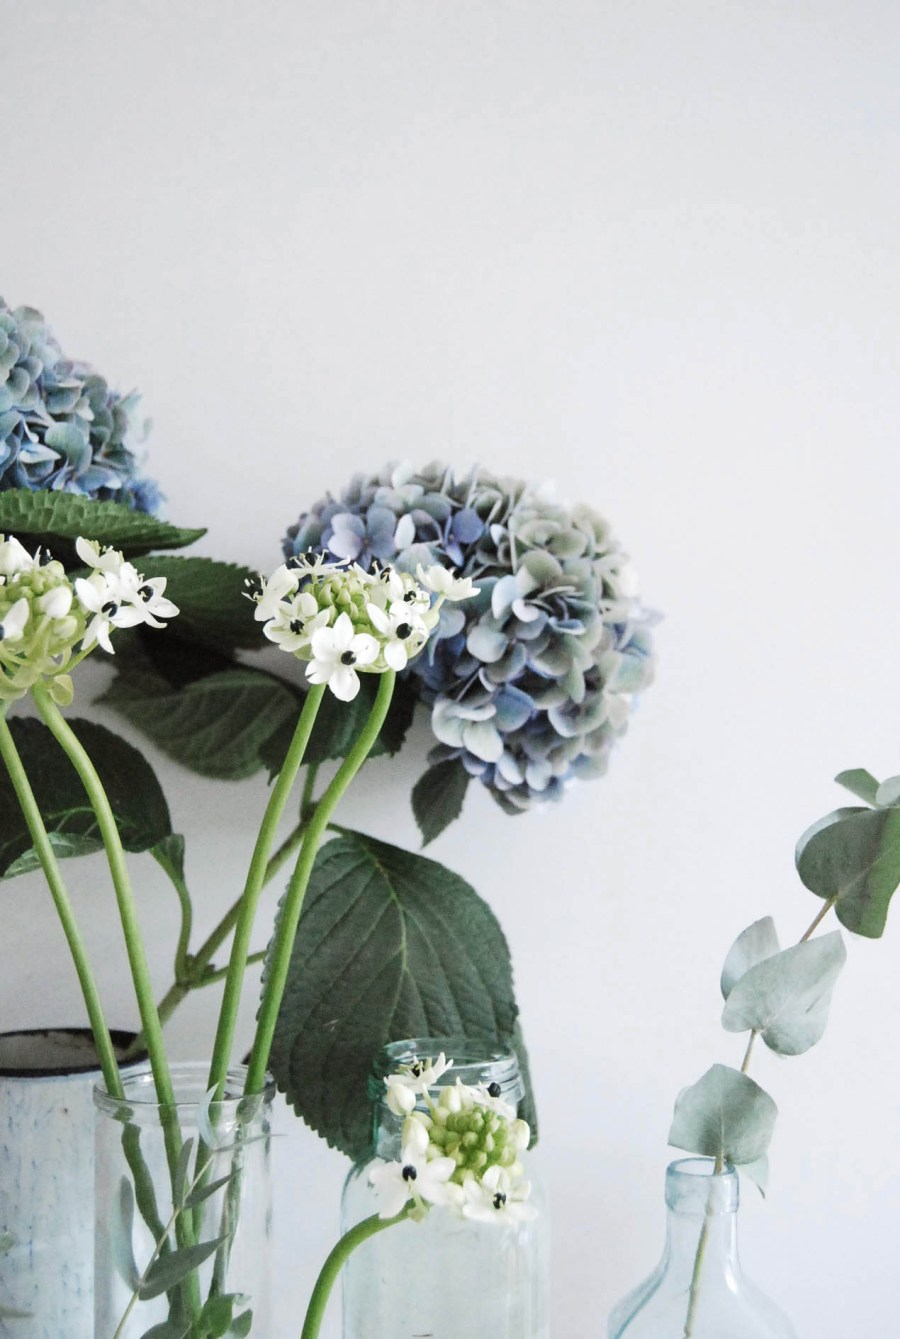 urban-jungle-bloggers-plants-flowers-31